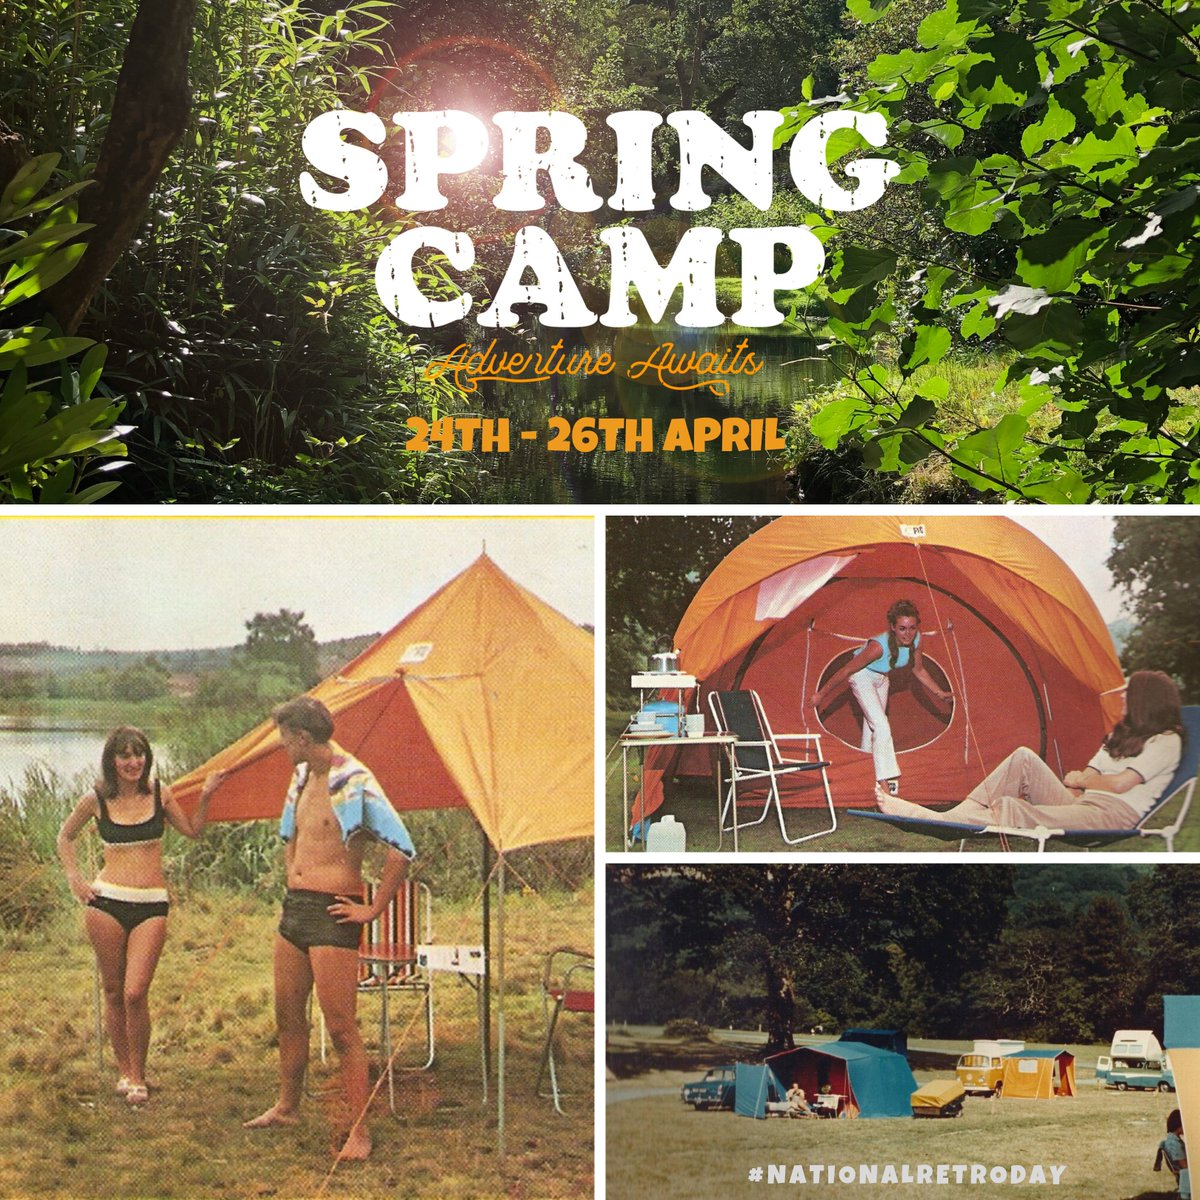 Its #NationalRetroDay! The perfect opportunity to get your Spring Camp tickets. Adventure awaits... Spring Camp, 24 - 26 April 2020 🏕 Tickets >>> bristolvolksfest.co.uk/spring-camp